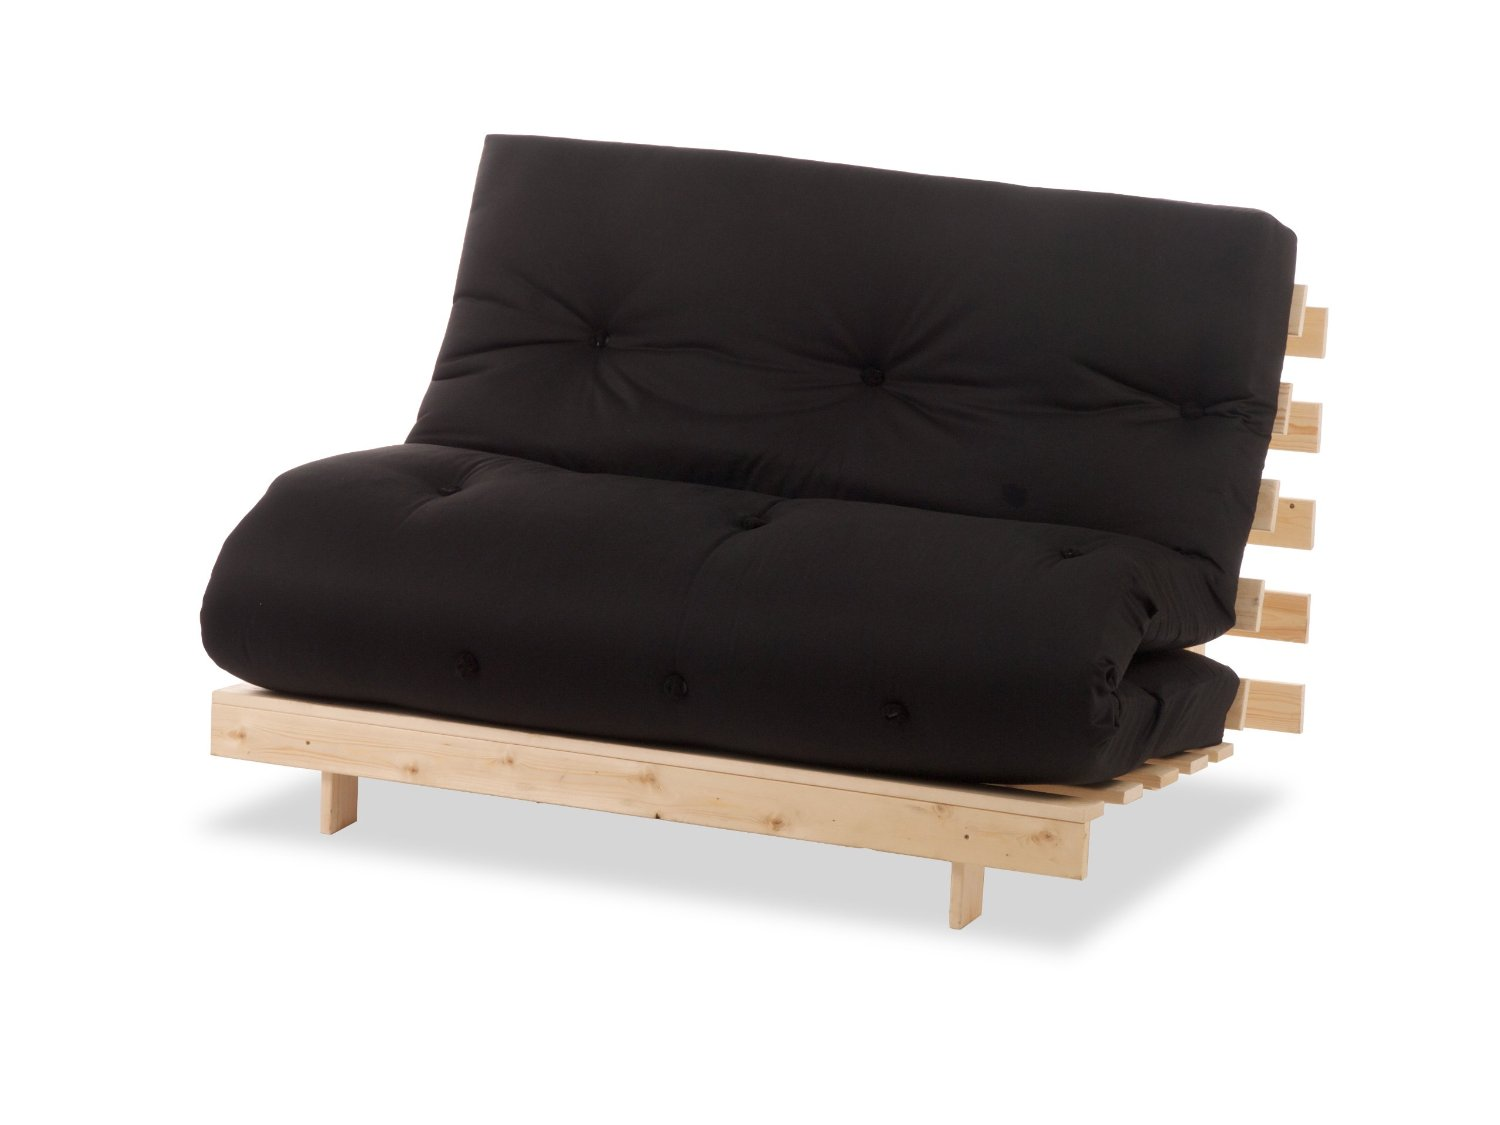 Metro One Seater Wooden Futon Sofa Bed